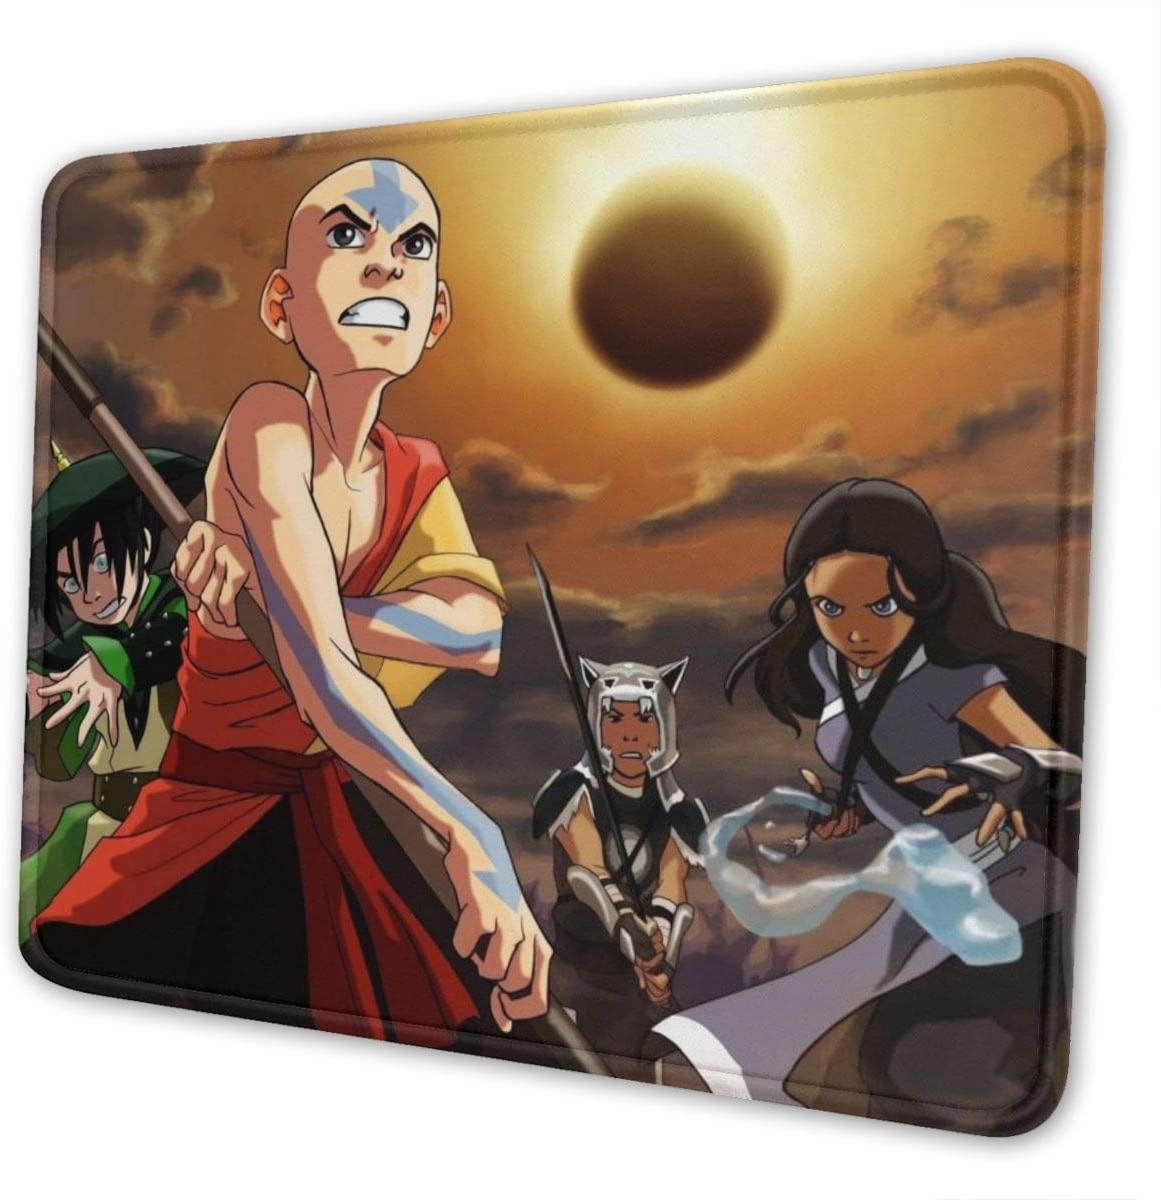 Didrika Avatar The Last Airbender Mouse Pad with Stitched Edge, Premium-Textured Mouse Mat, Non-Slip Rubber Base Mousepad for Laptop, Computer & Pc,7 X 8.6 in